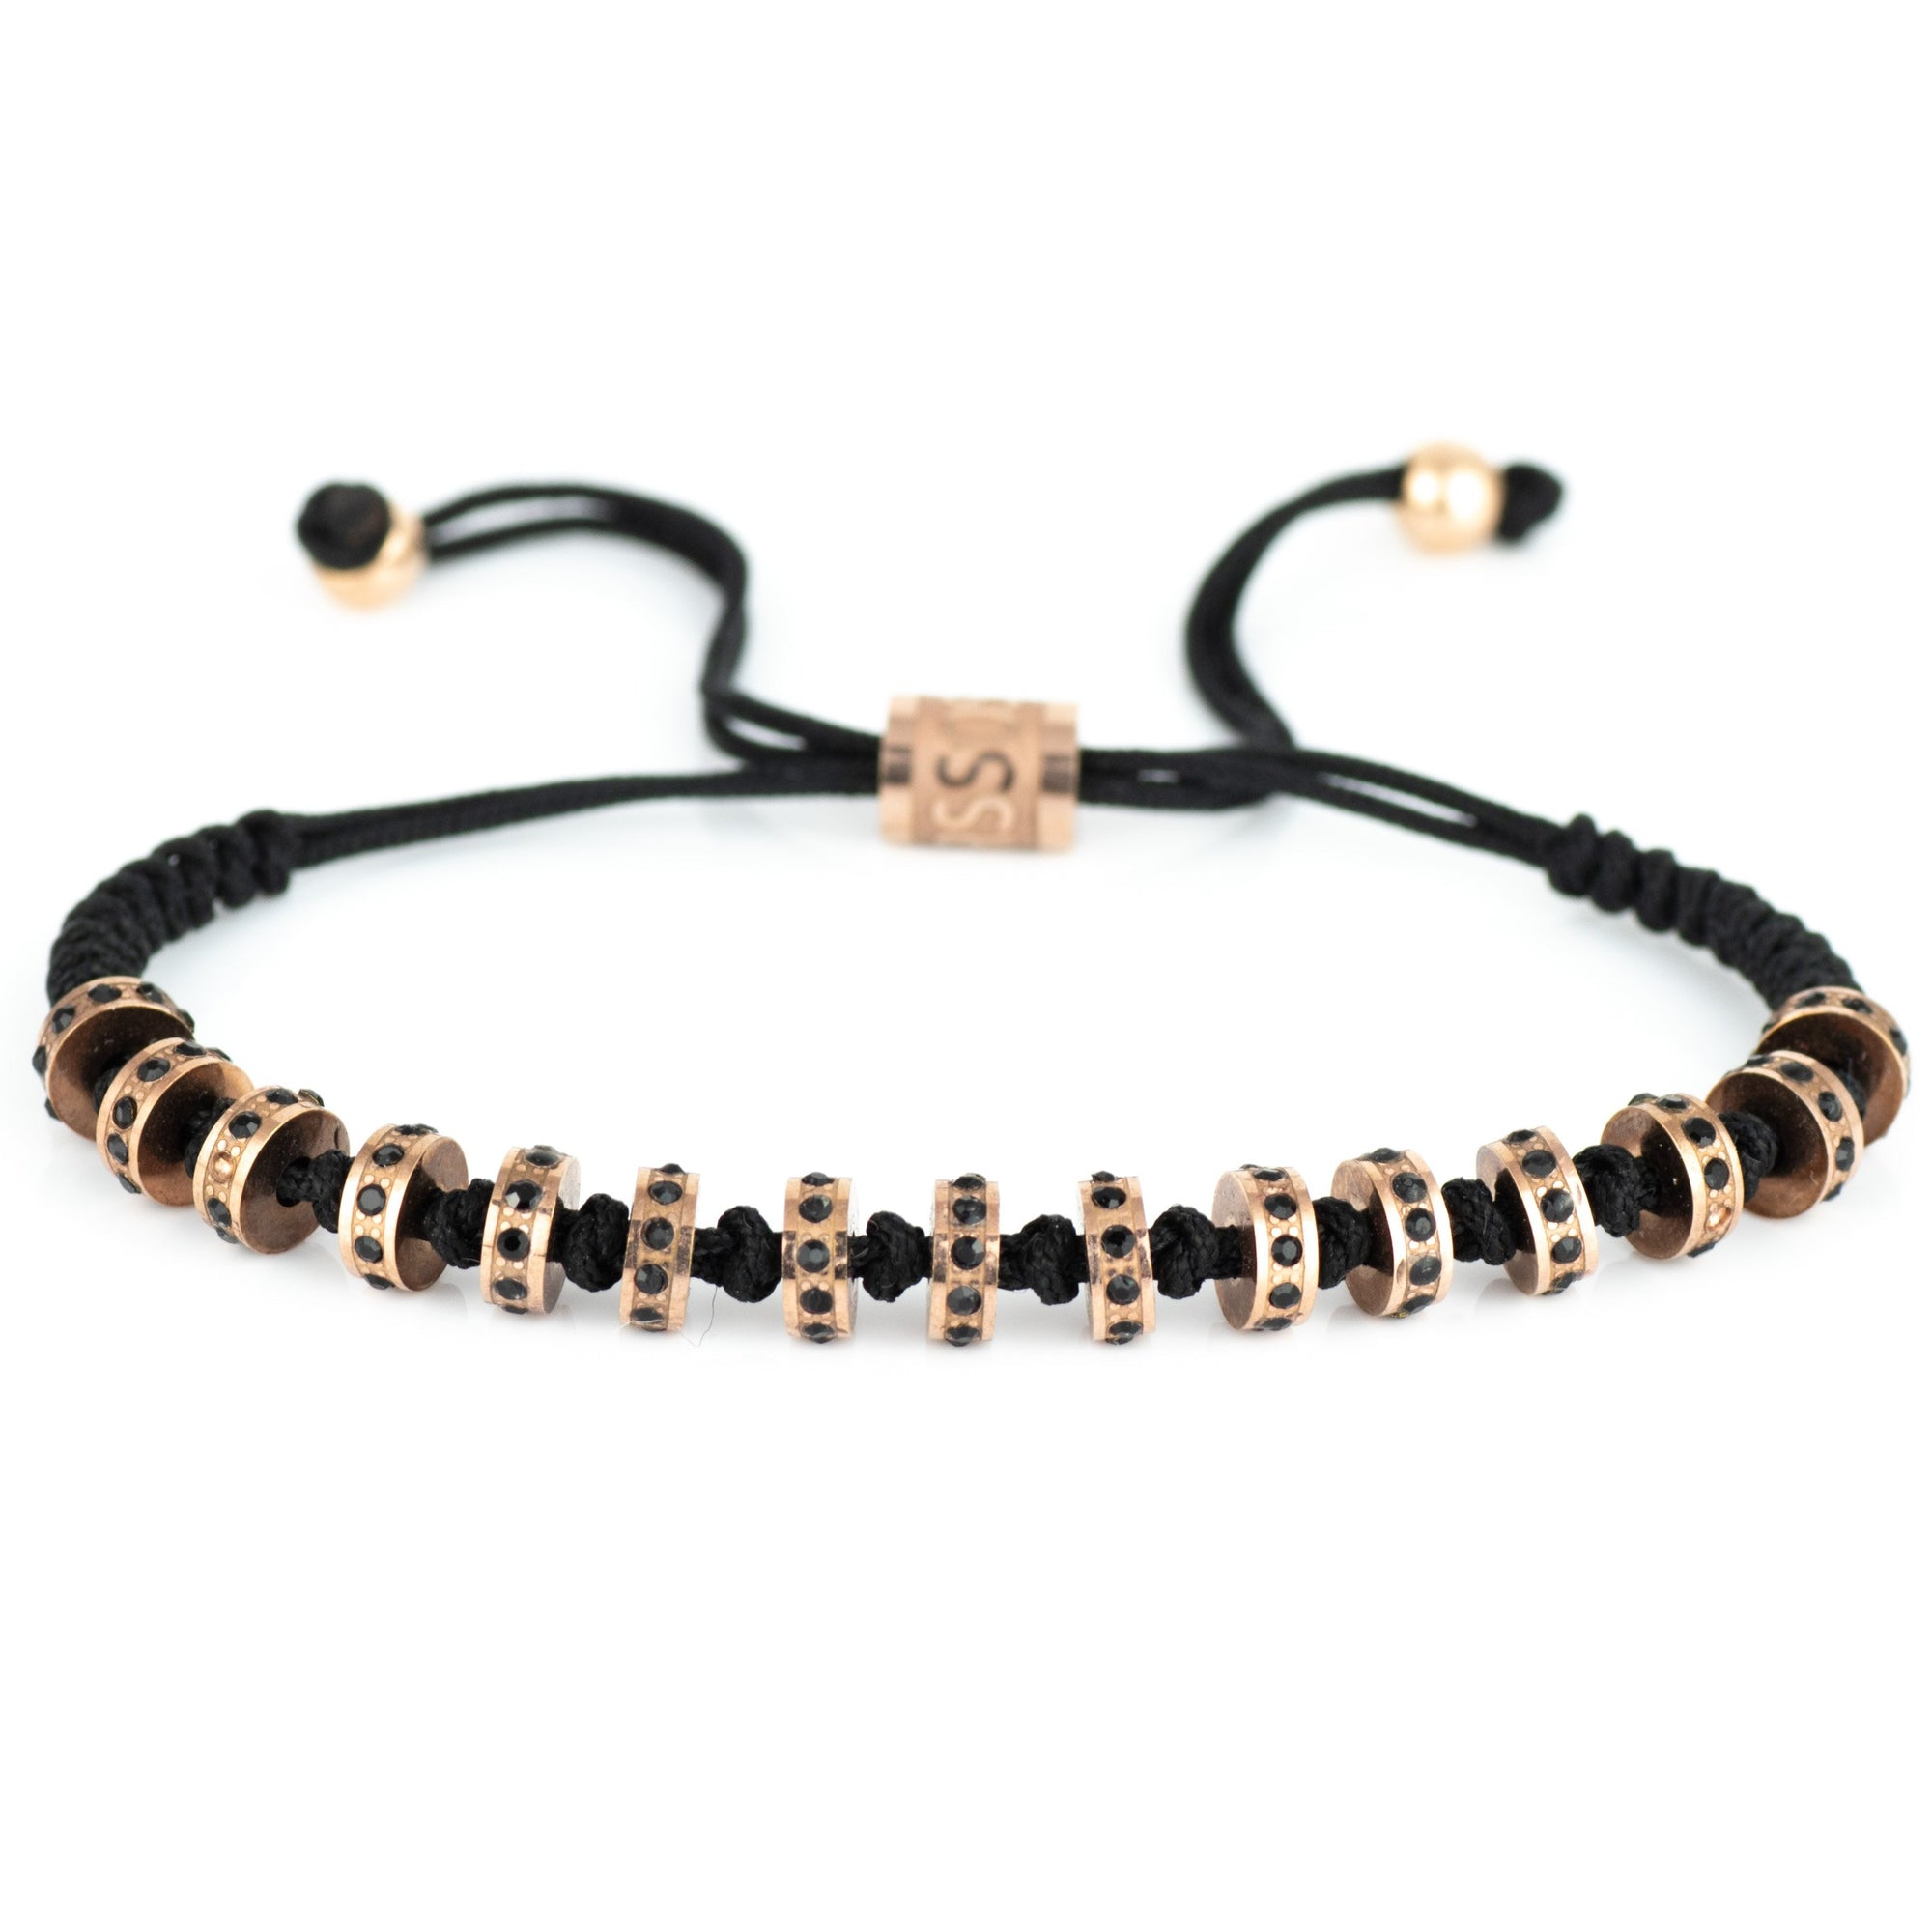 The Macrame Bracelet - Rose Gold - Marssos